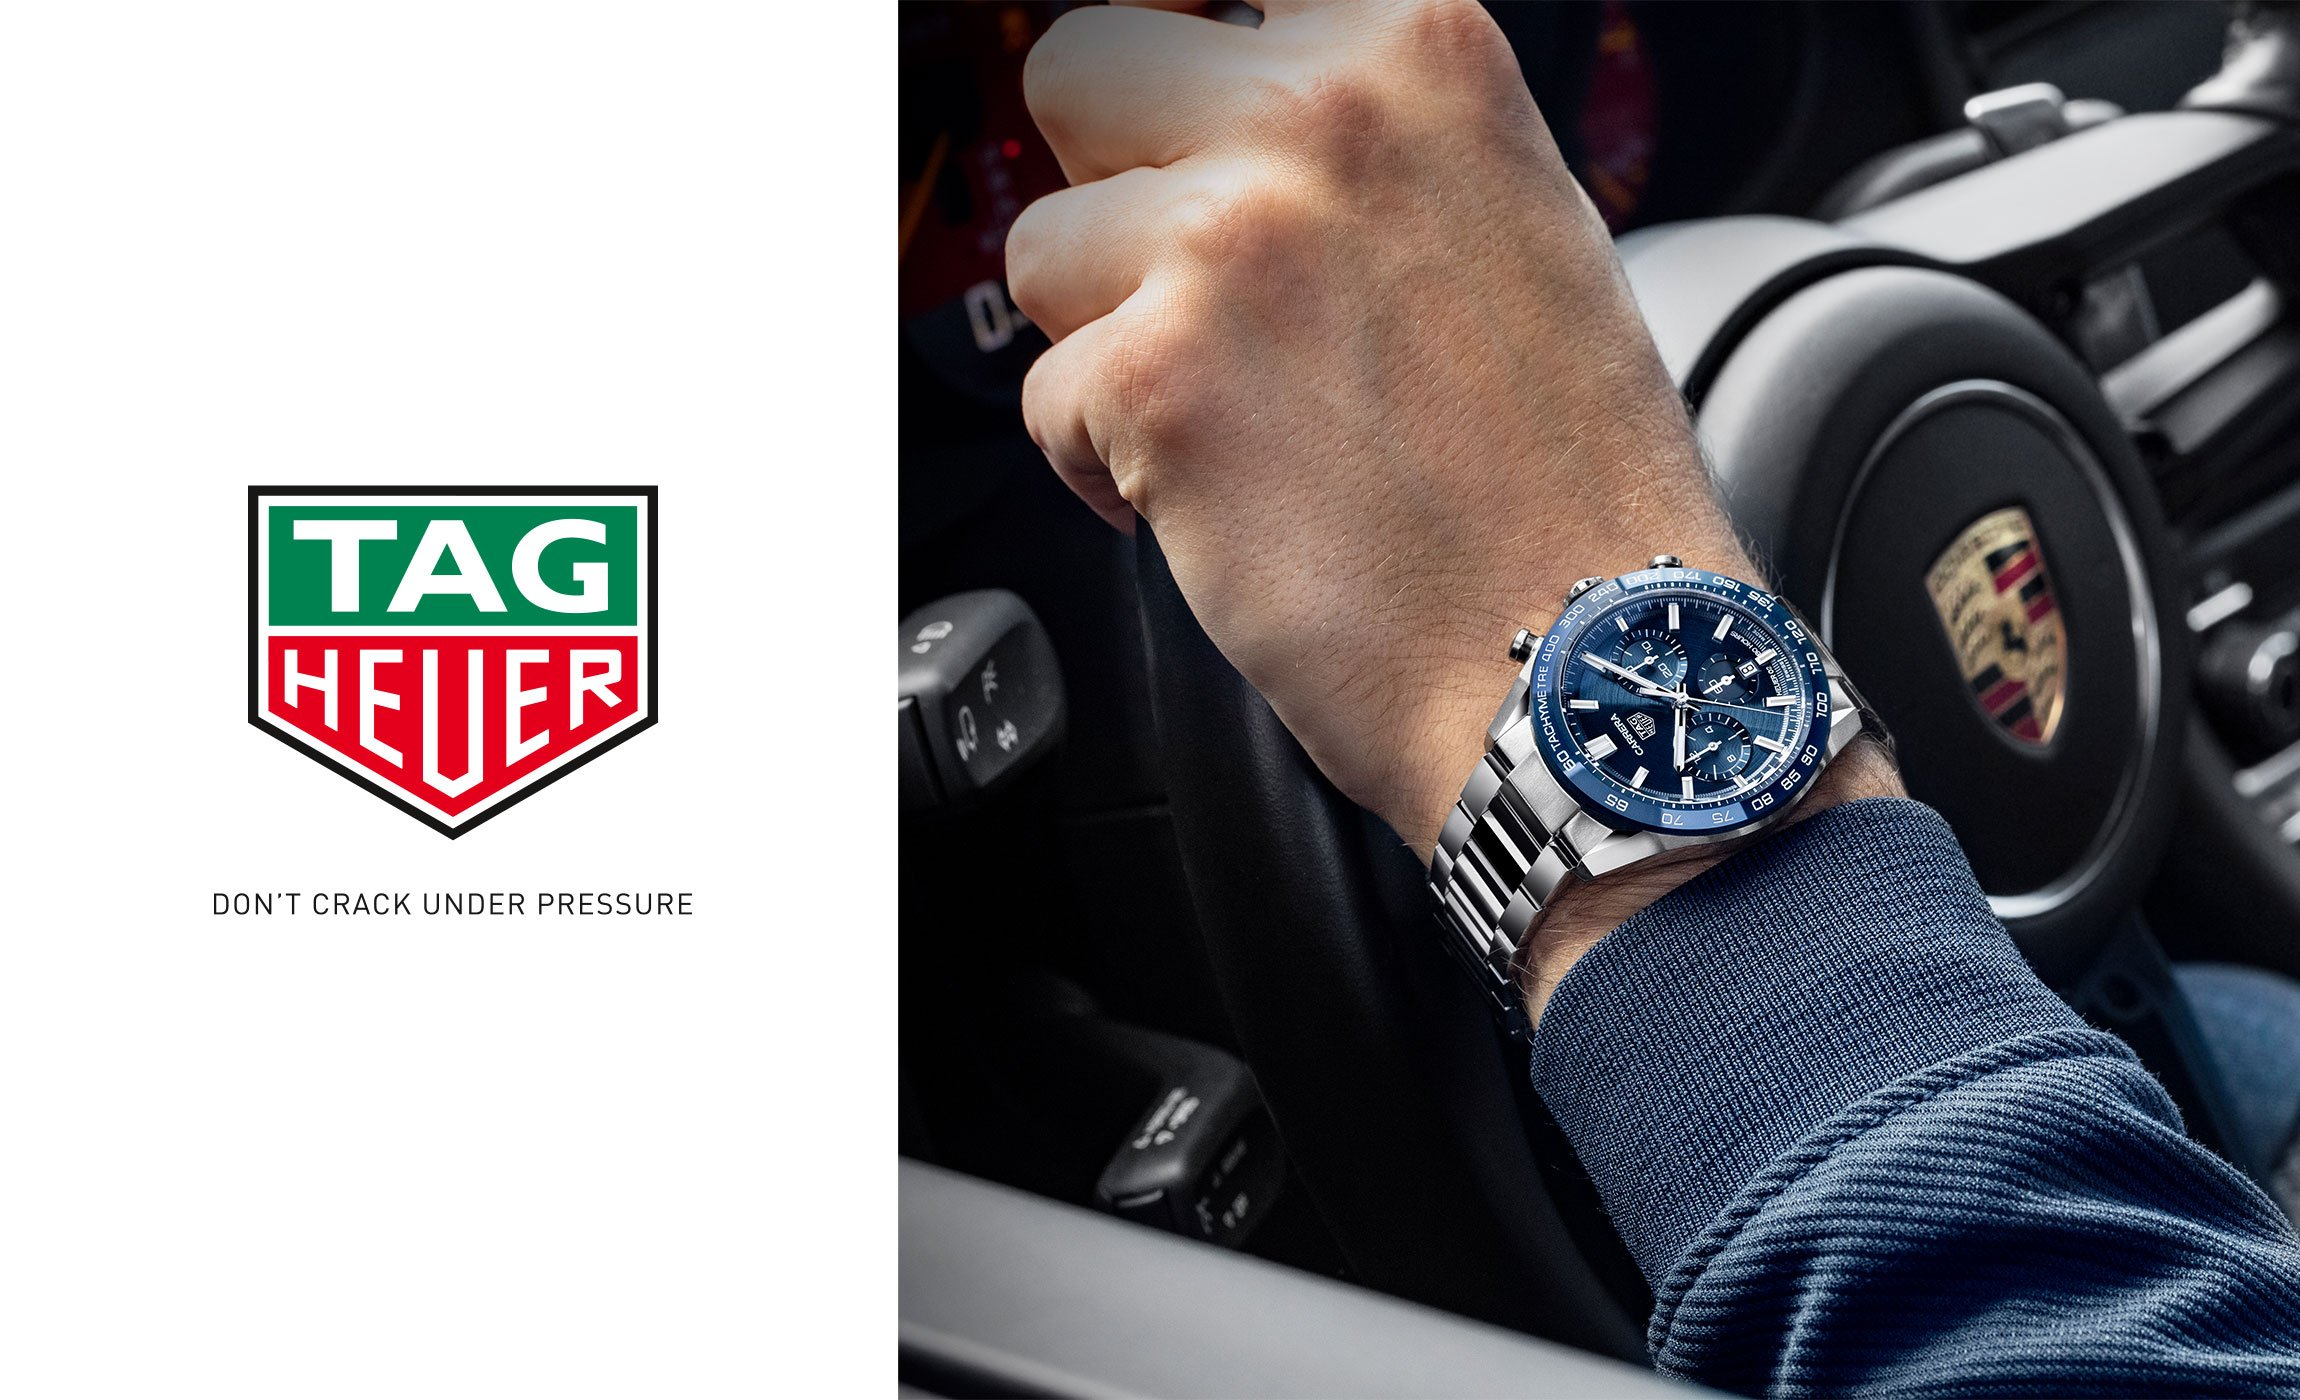 TAG Heuer Carrera - The heart and soul of motorsports since 1963